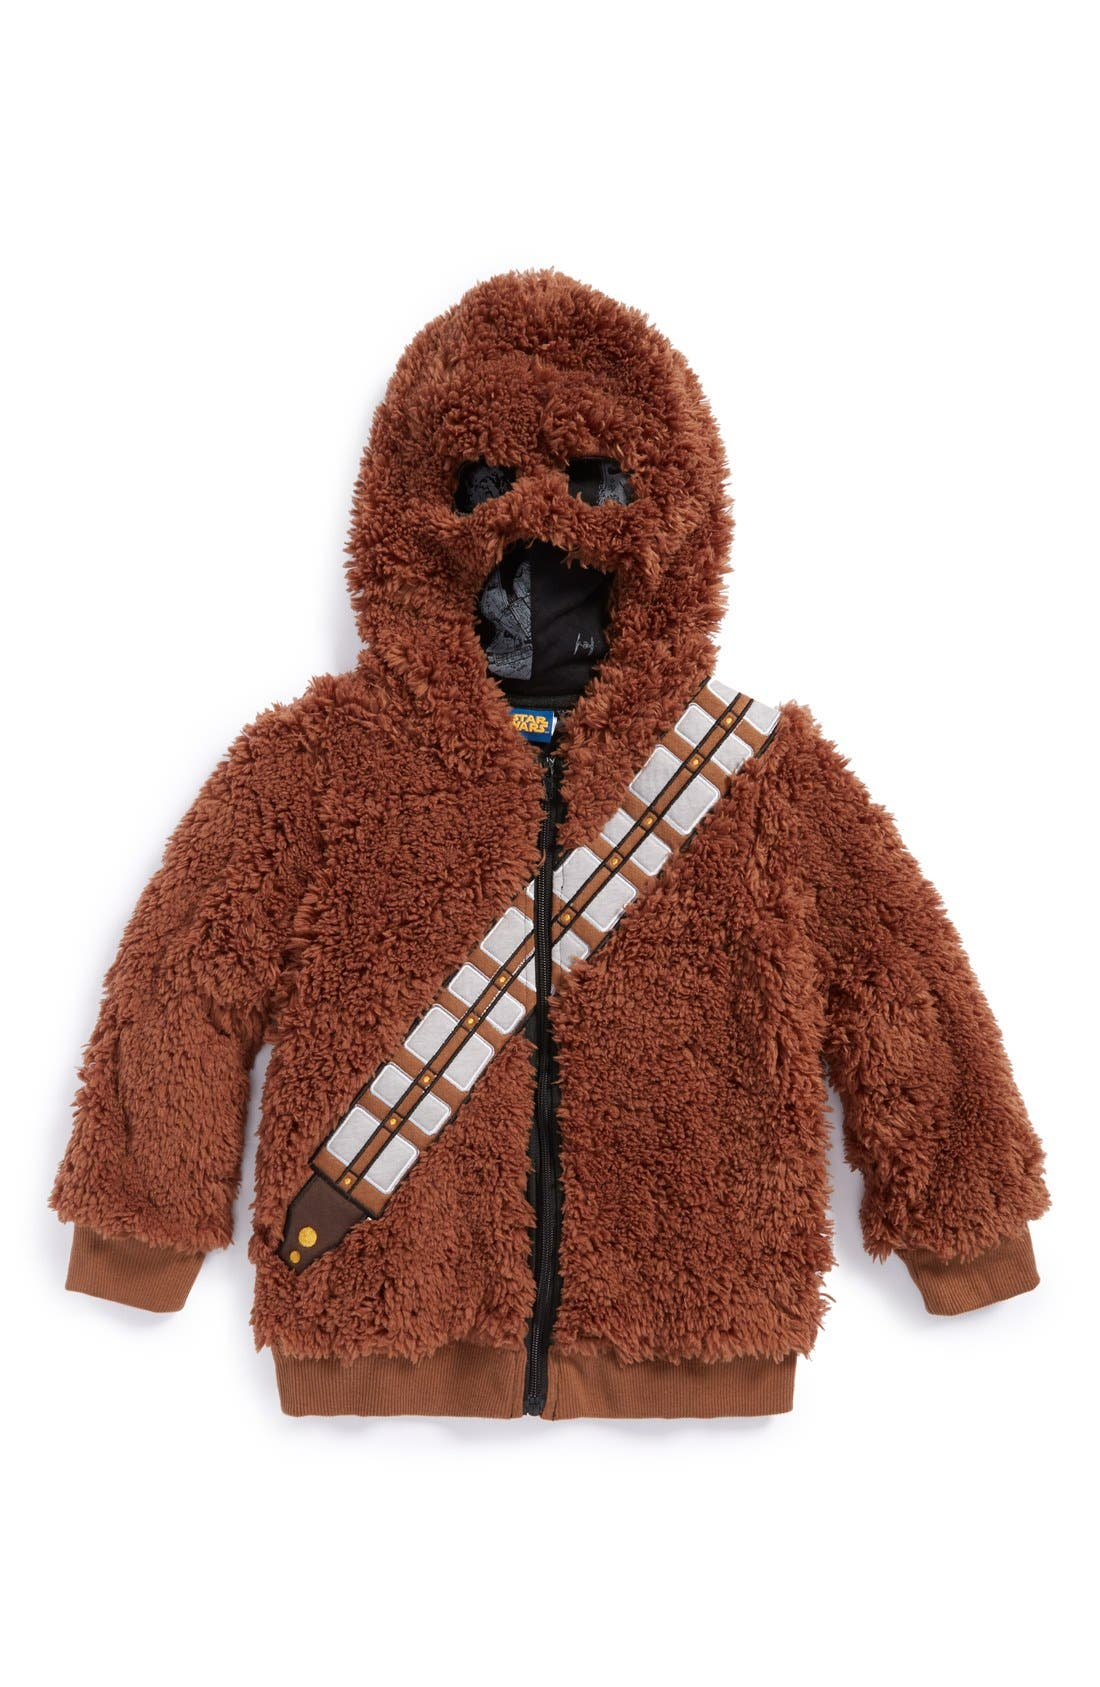 'Star Wars<sup>™</sup> - Chewbacca' Hoodie,                             Main thumbnail 1, color,                             200